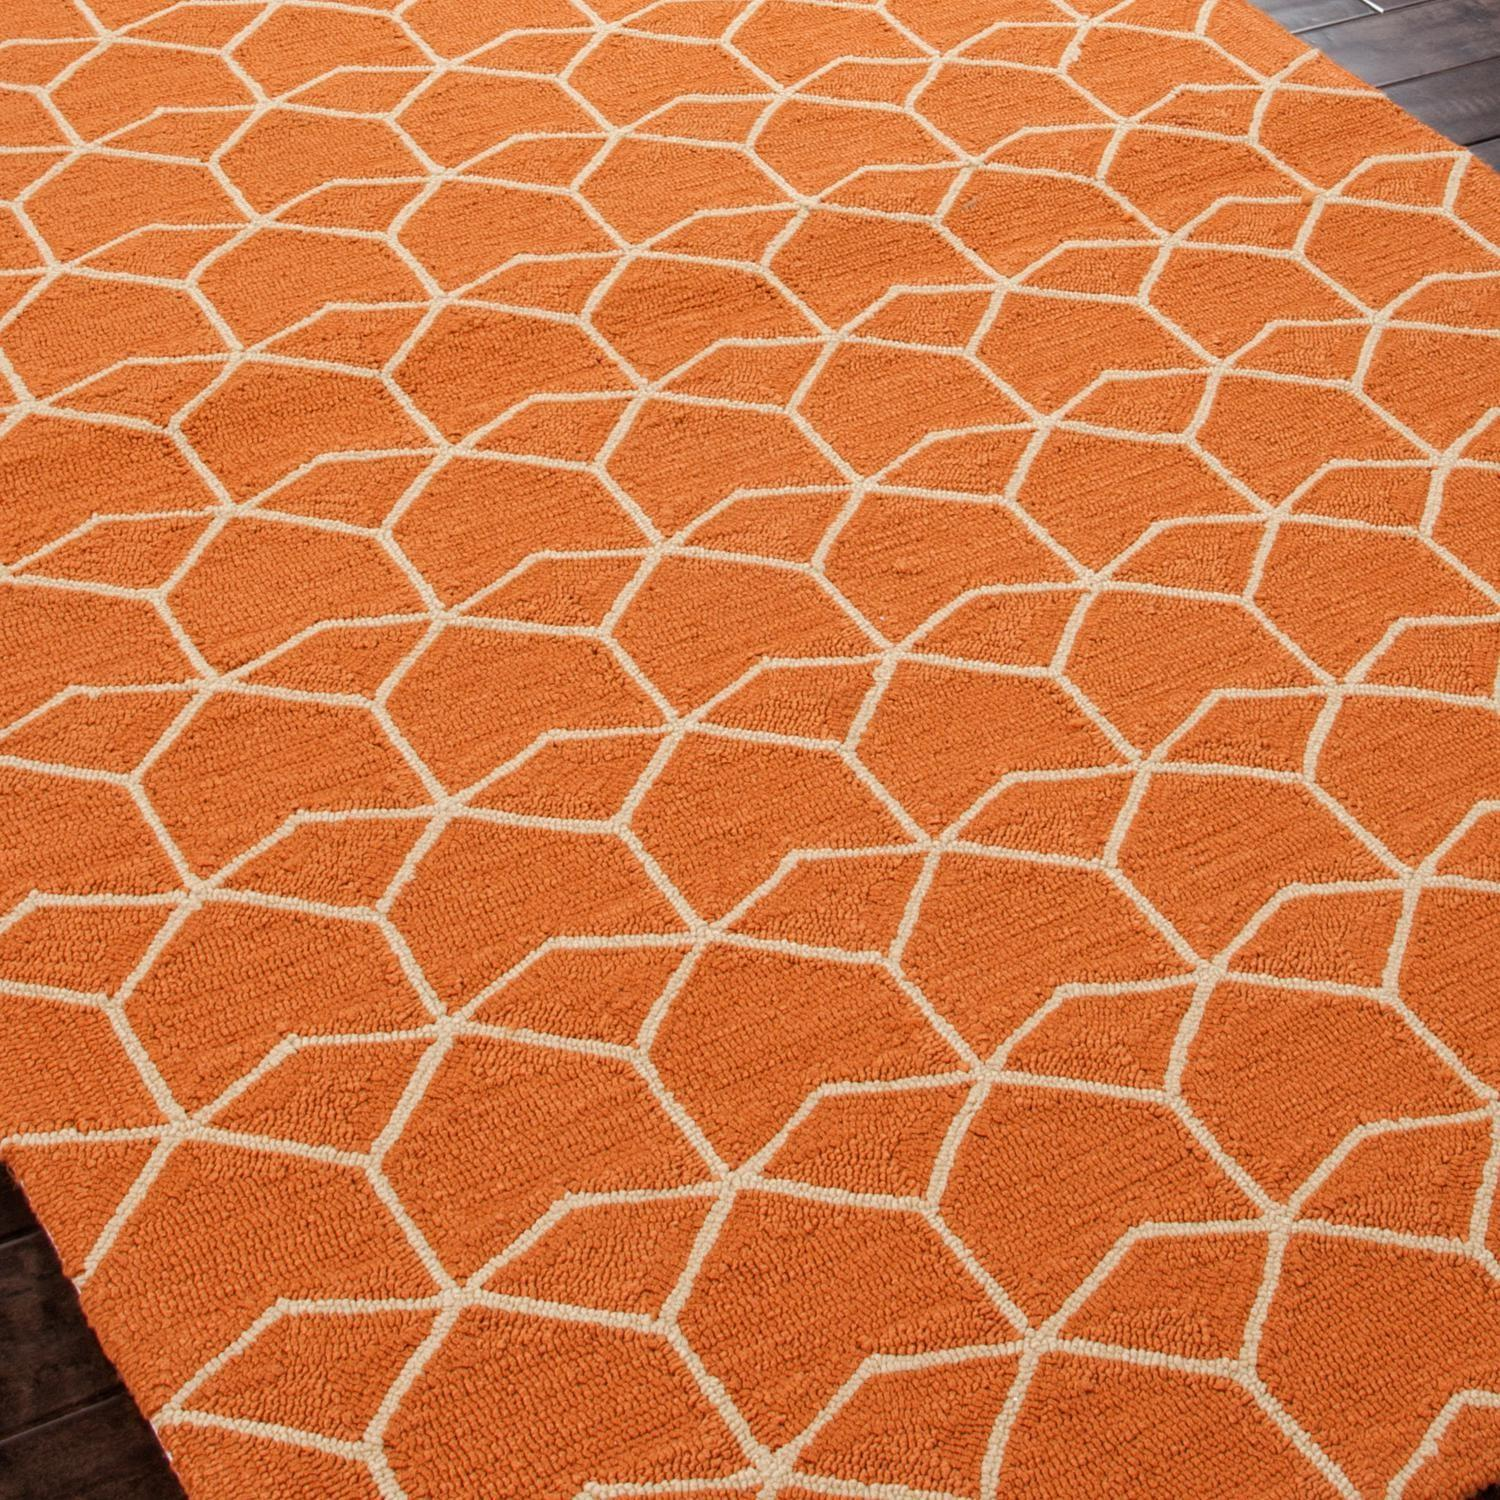 Jaipur Rugs Barcelona Estrellas Indoor Outdoor Rug